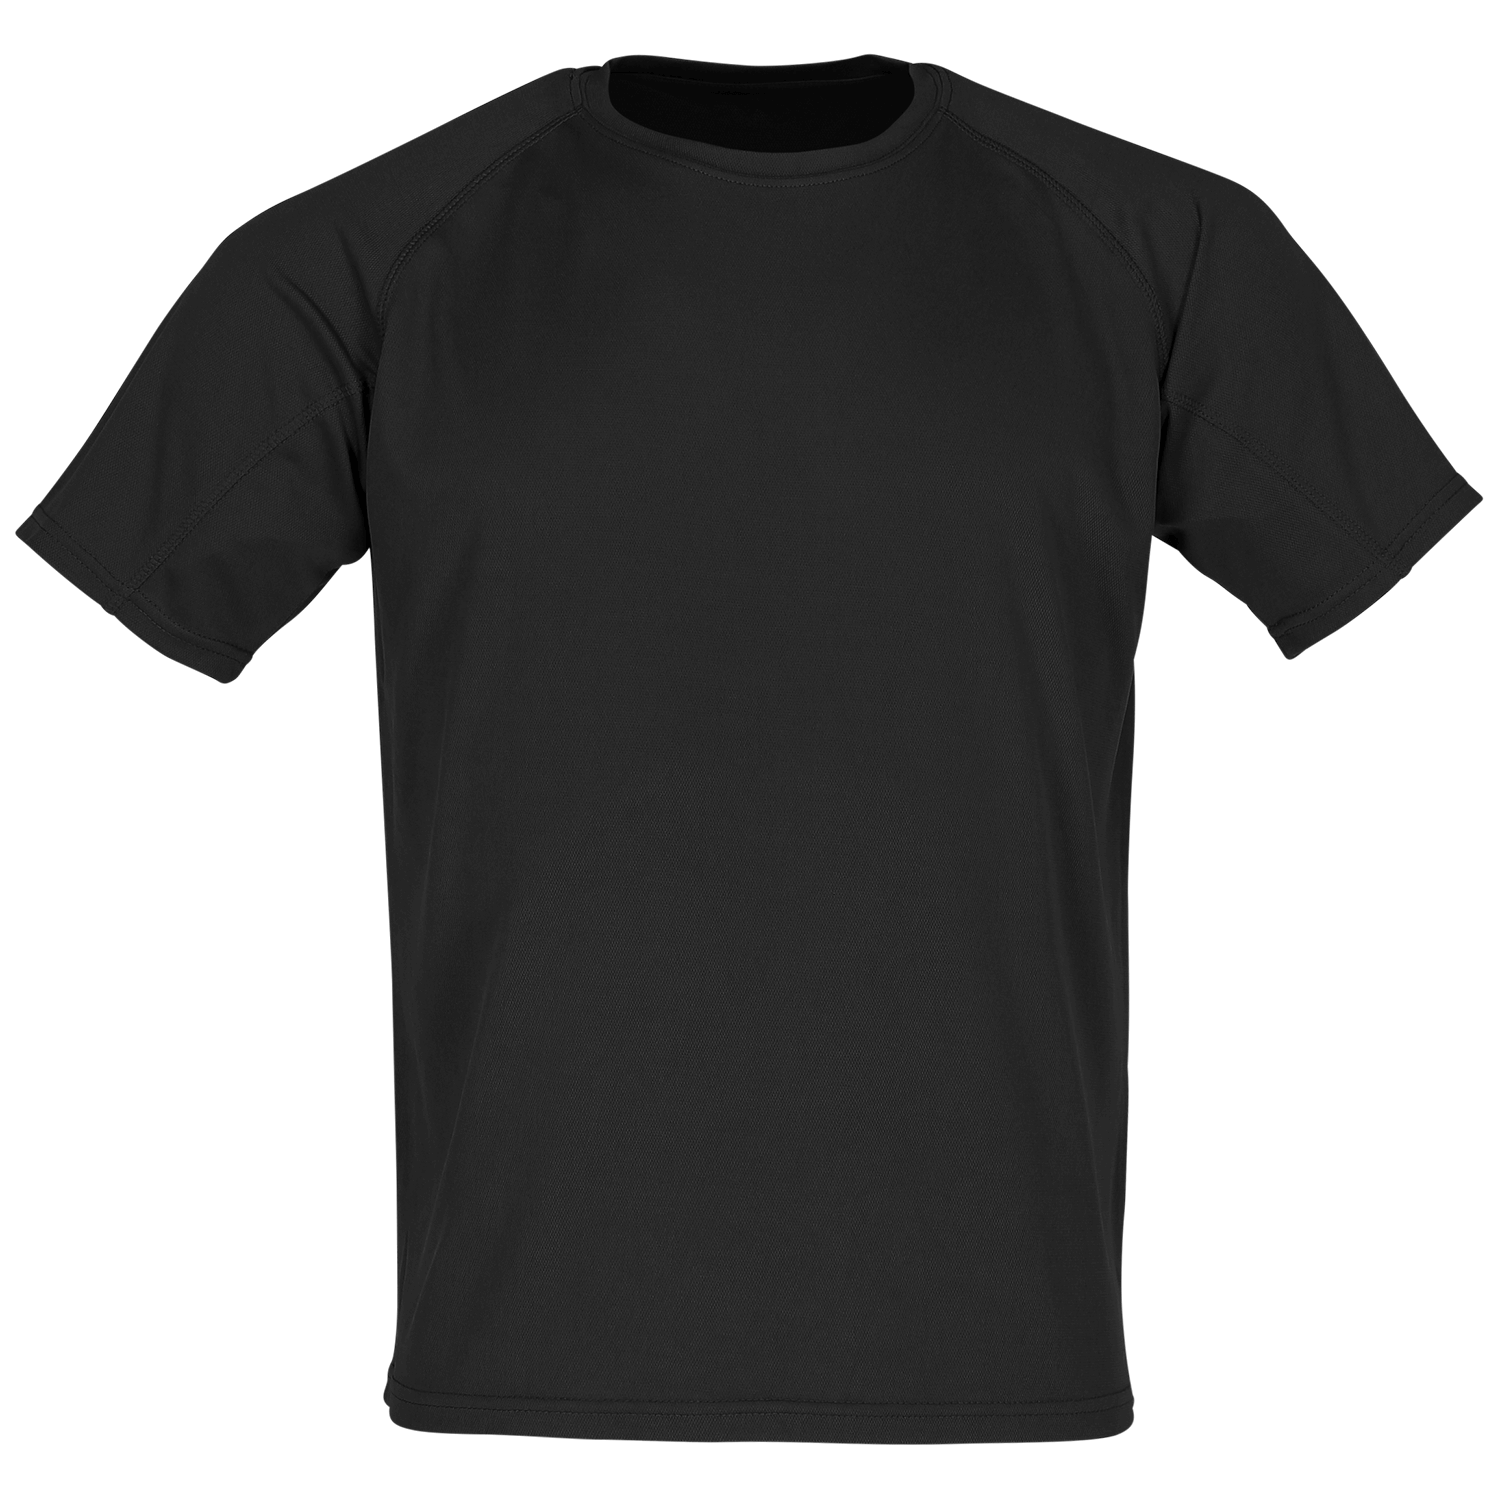 Aircool T-Shirt